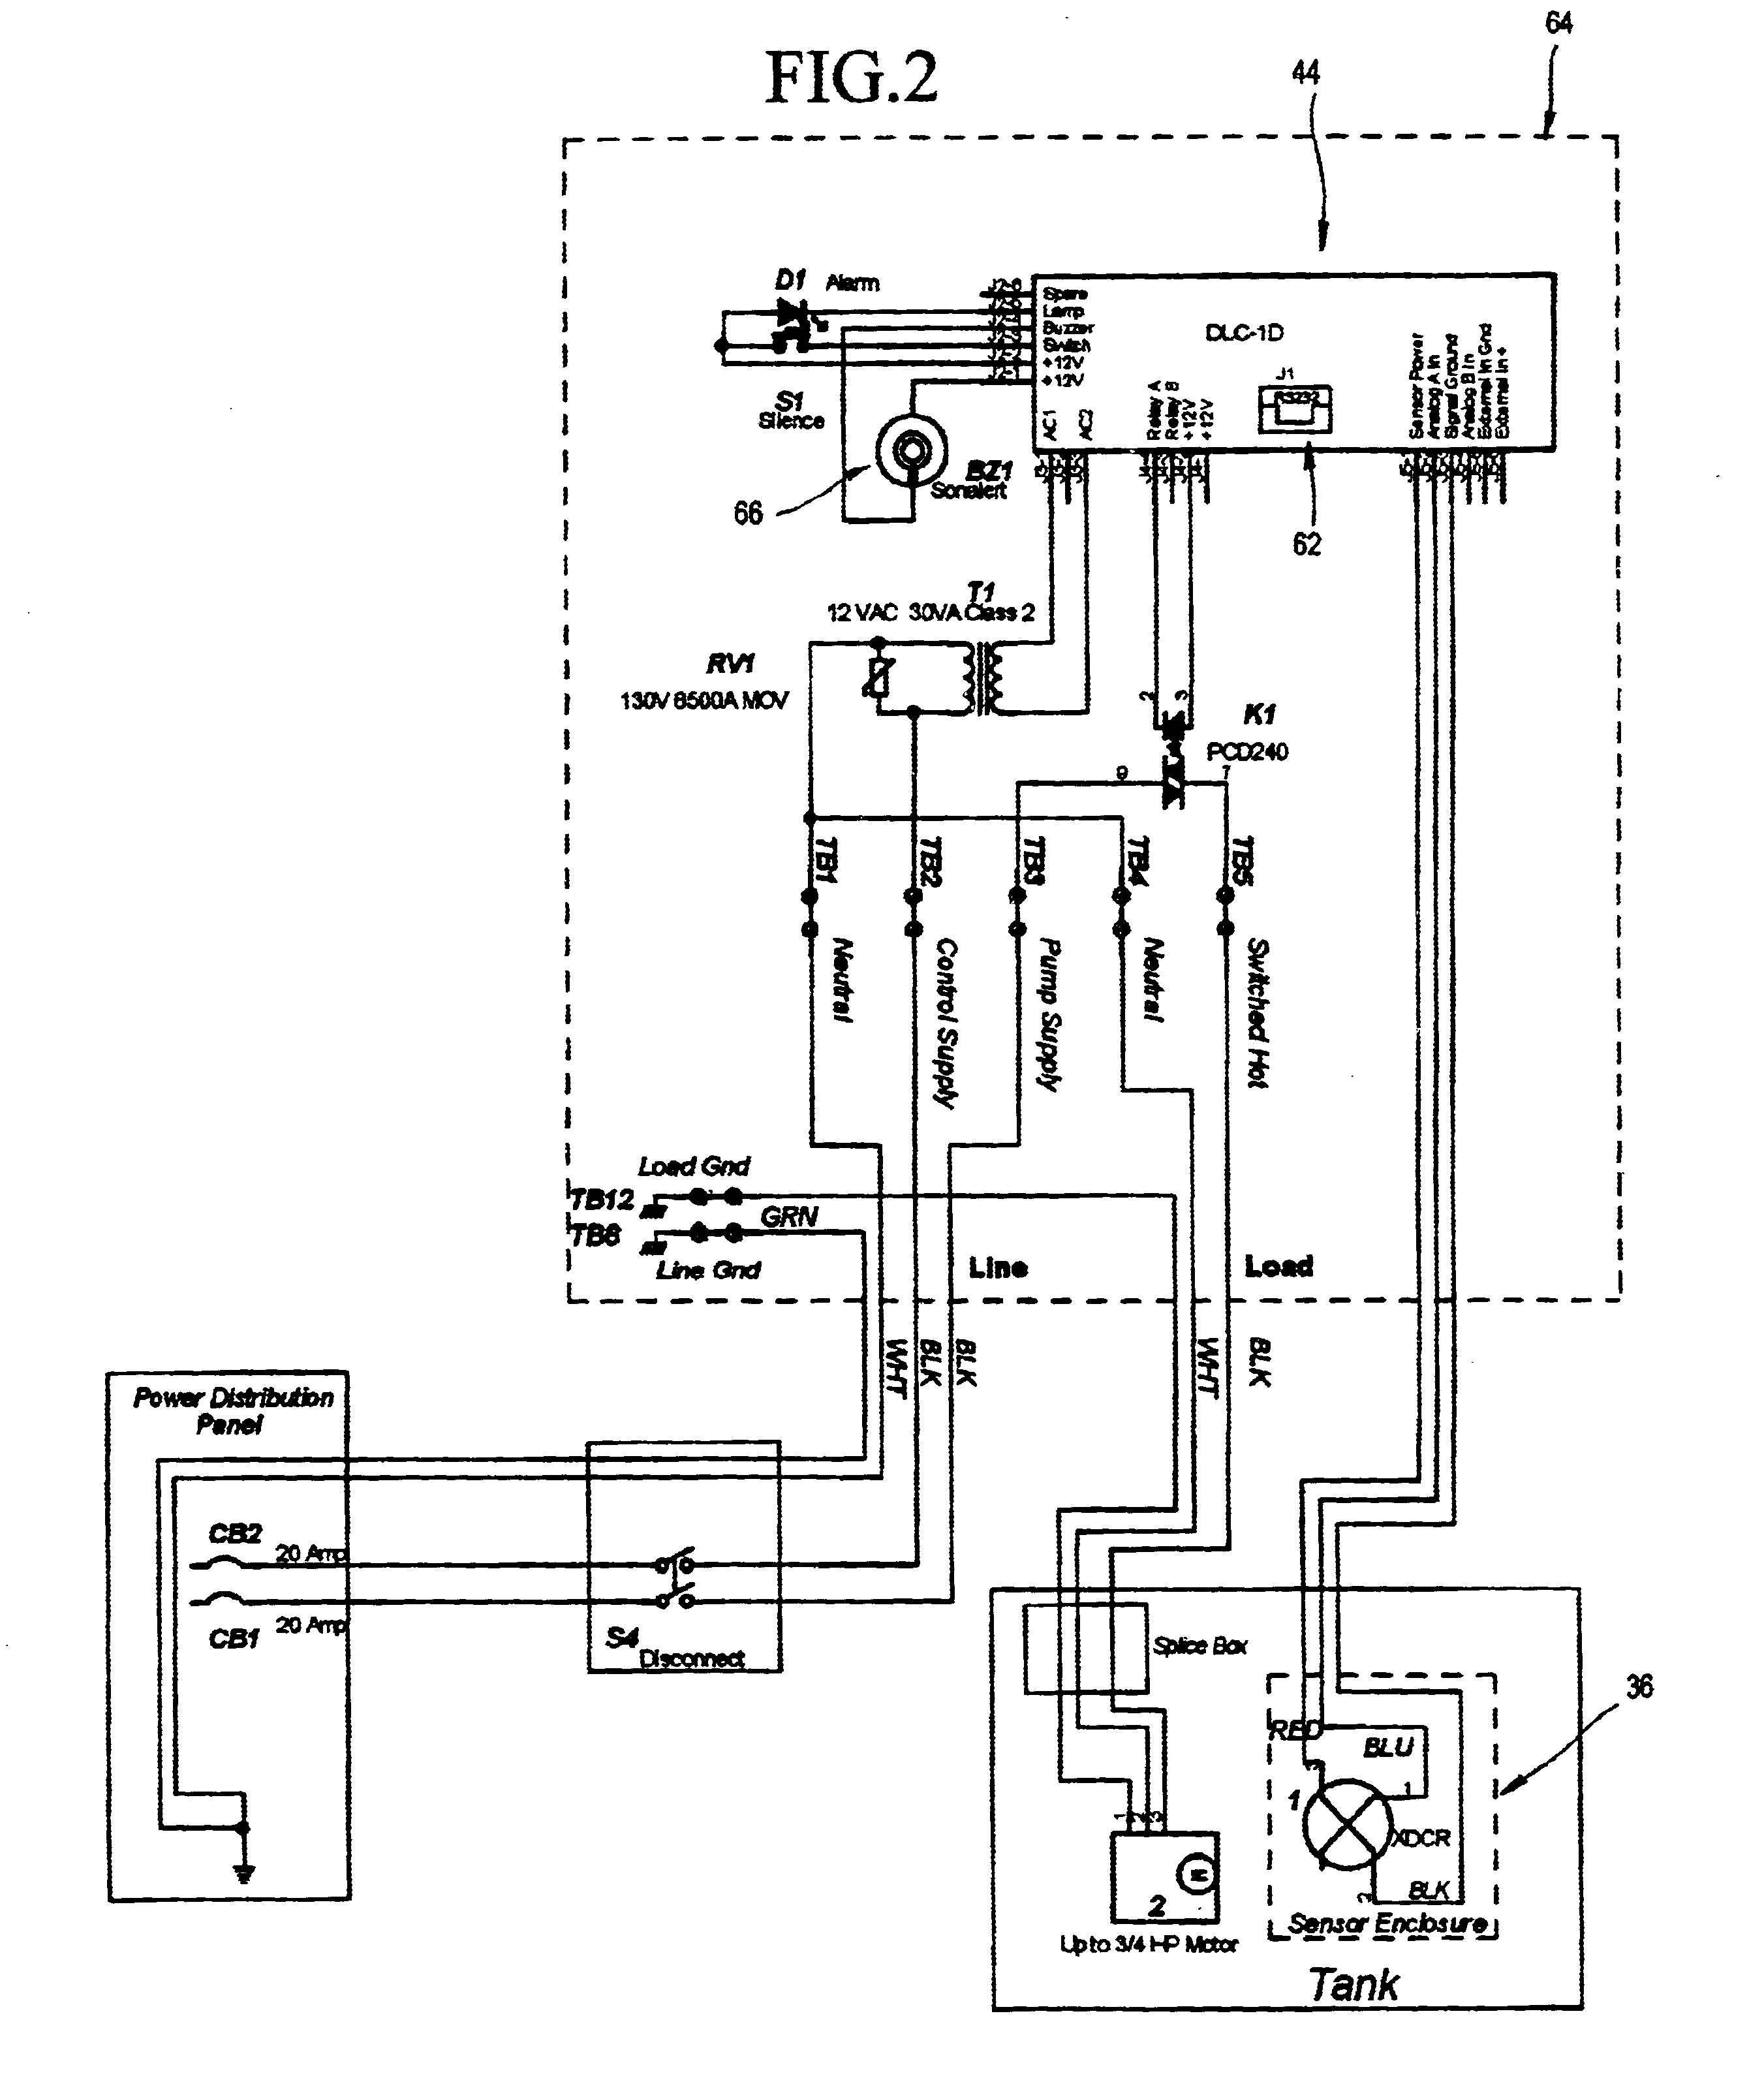 clearstream septic system wiring diagram Collection-Aerobic Septic Tank Diagram Best How to Wire A Septic Tank Pump Cm Bbs 14-h